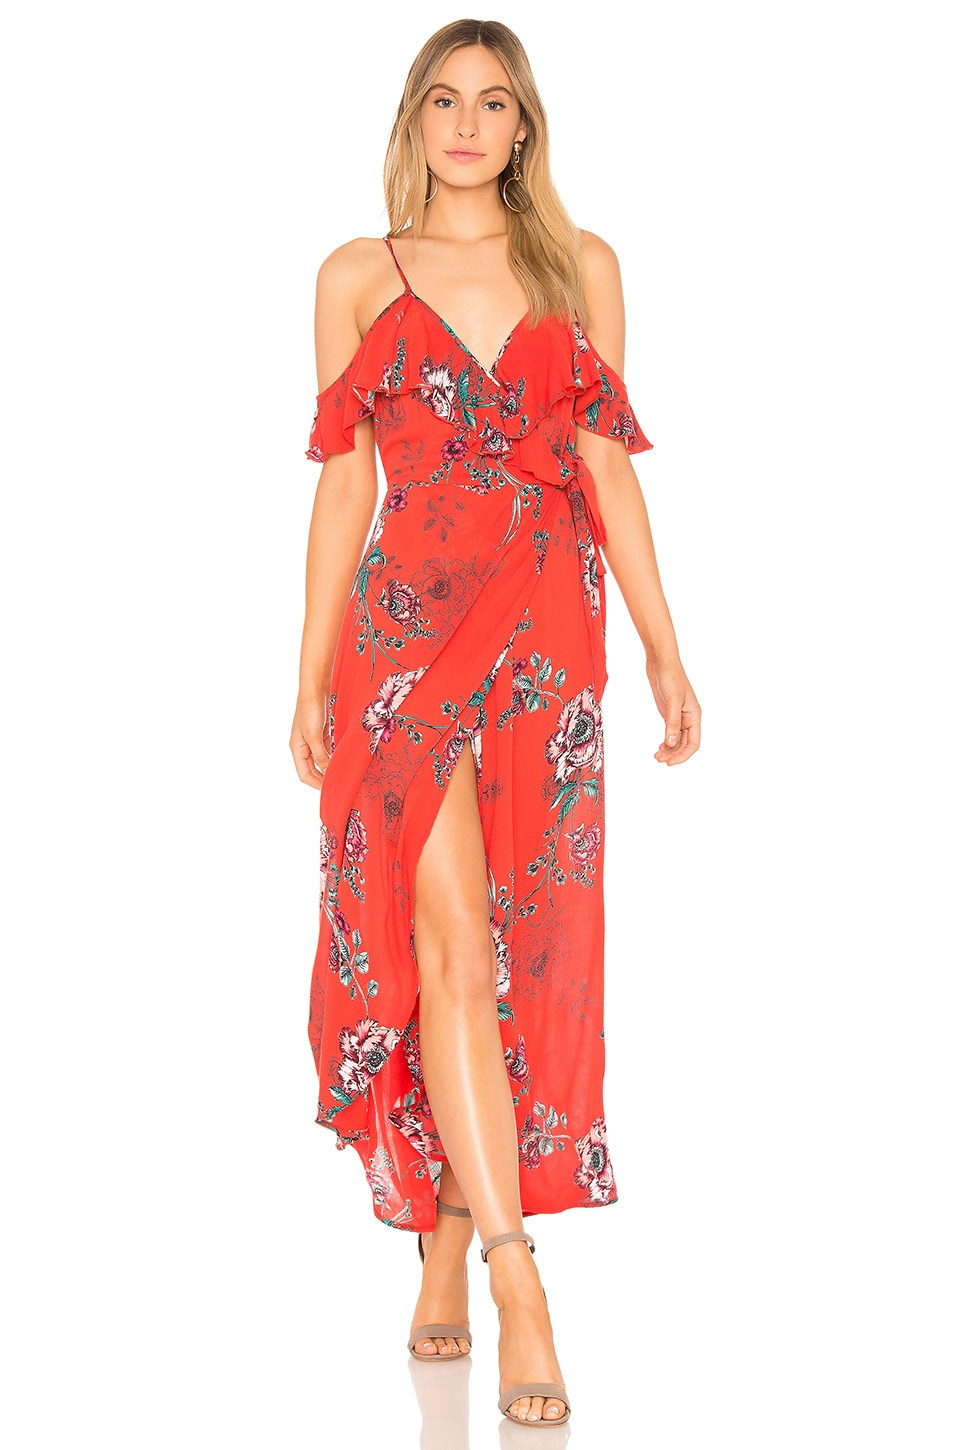 Band of Gypsies Shadow Floral Faux Wrap Dress in Red Peach